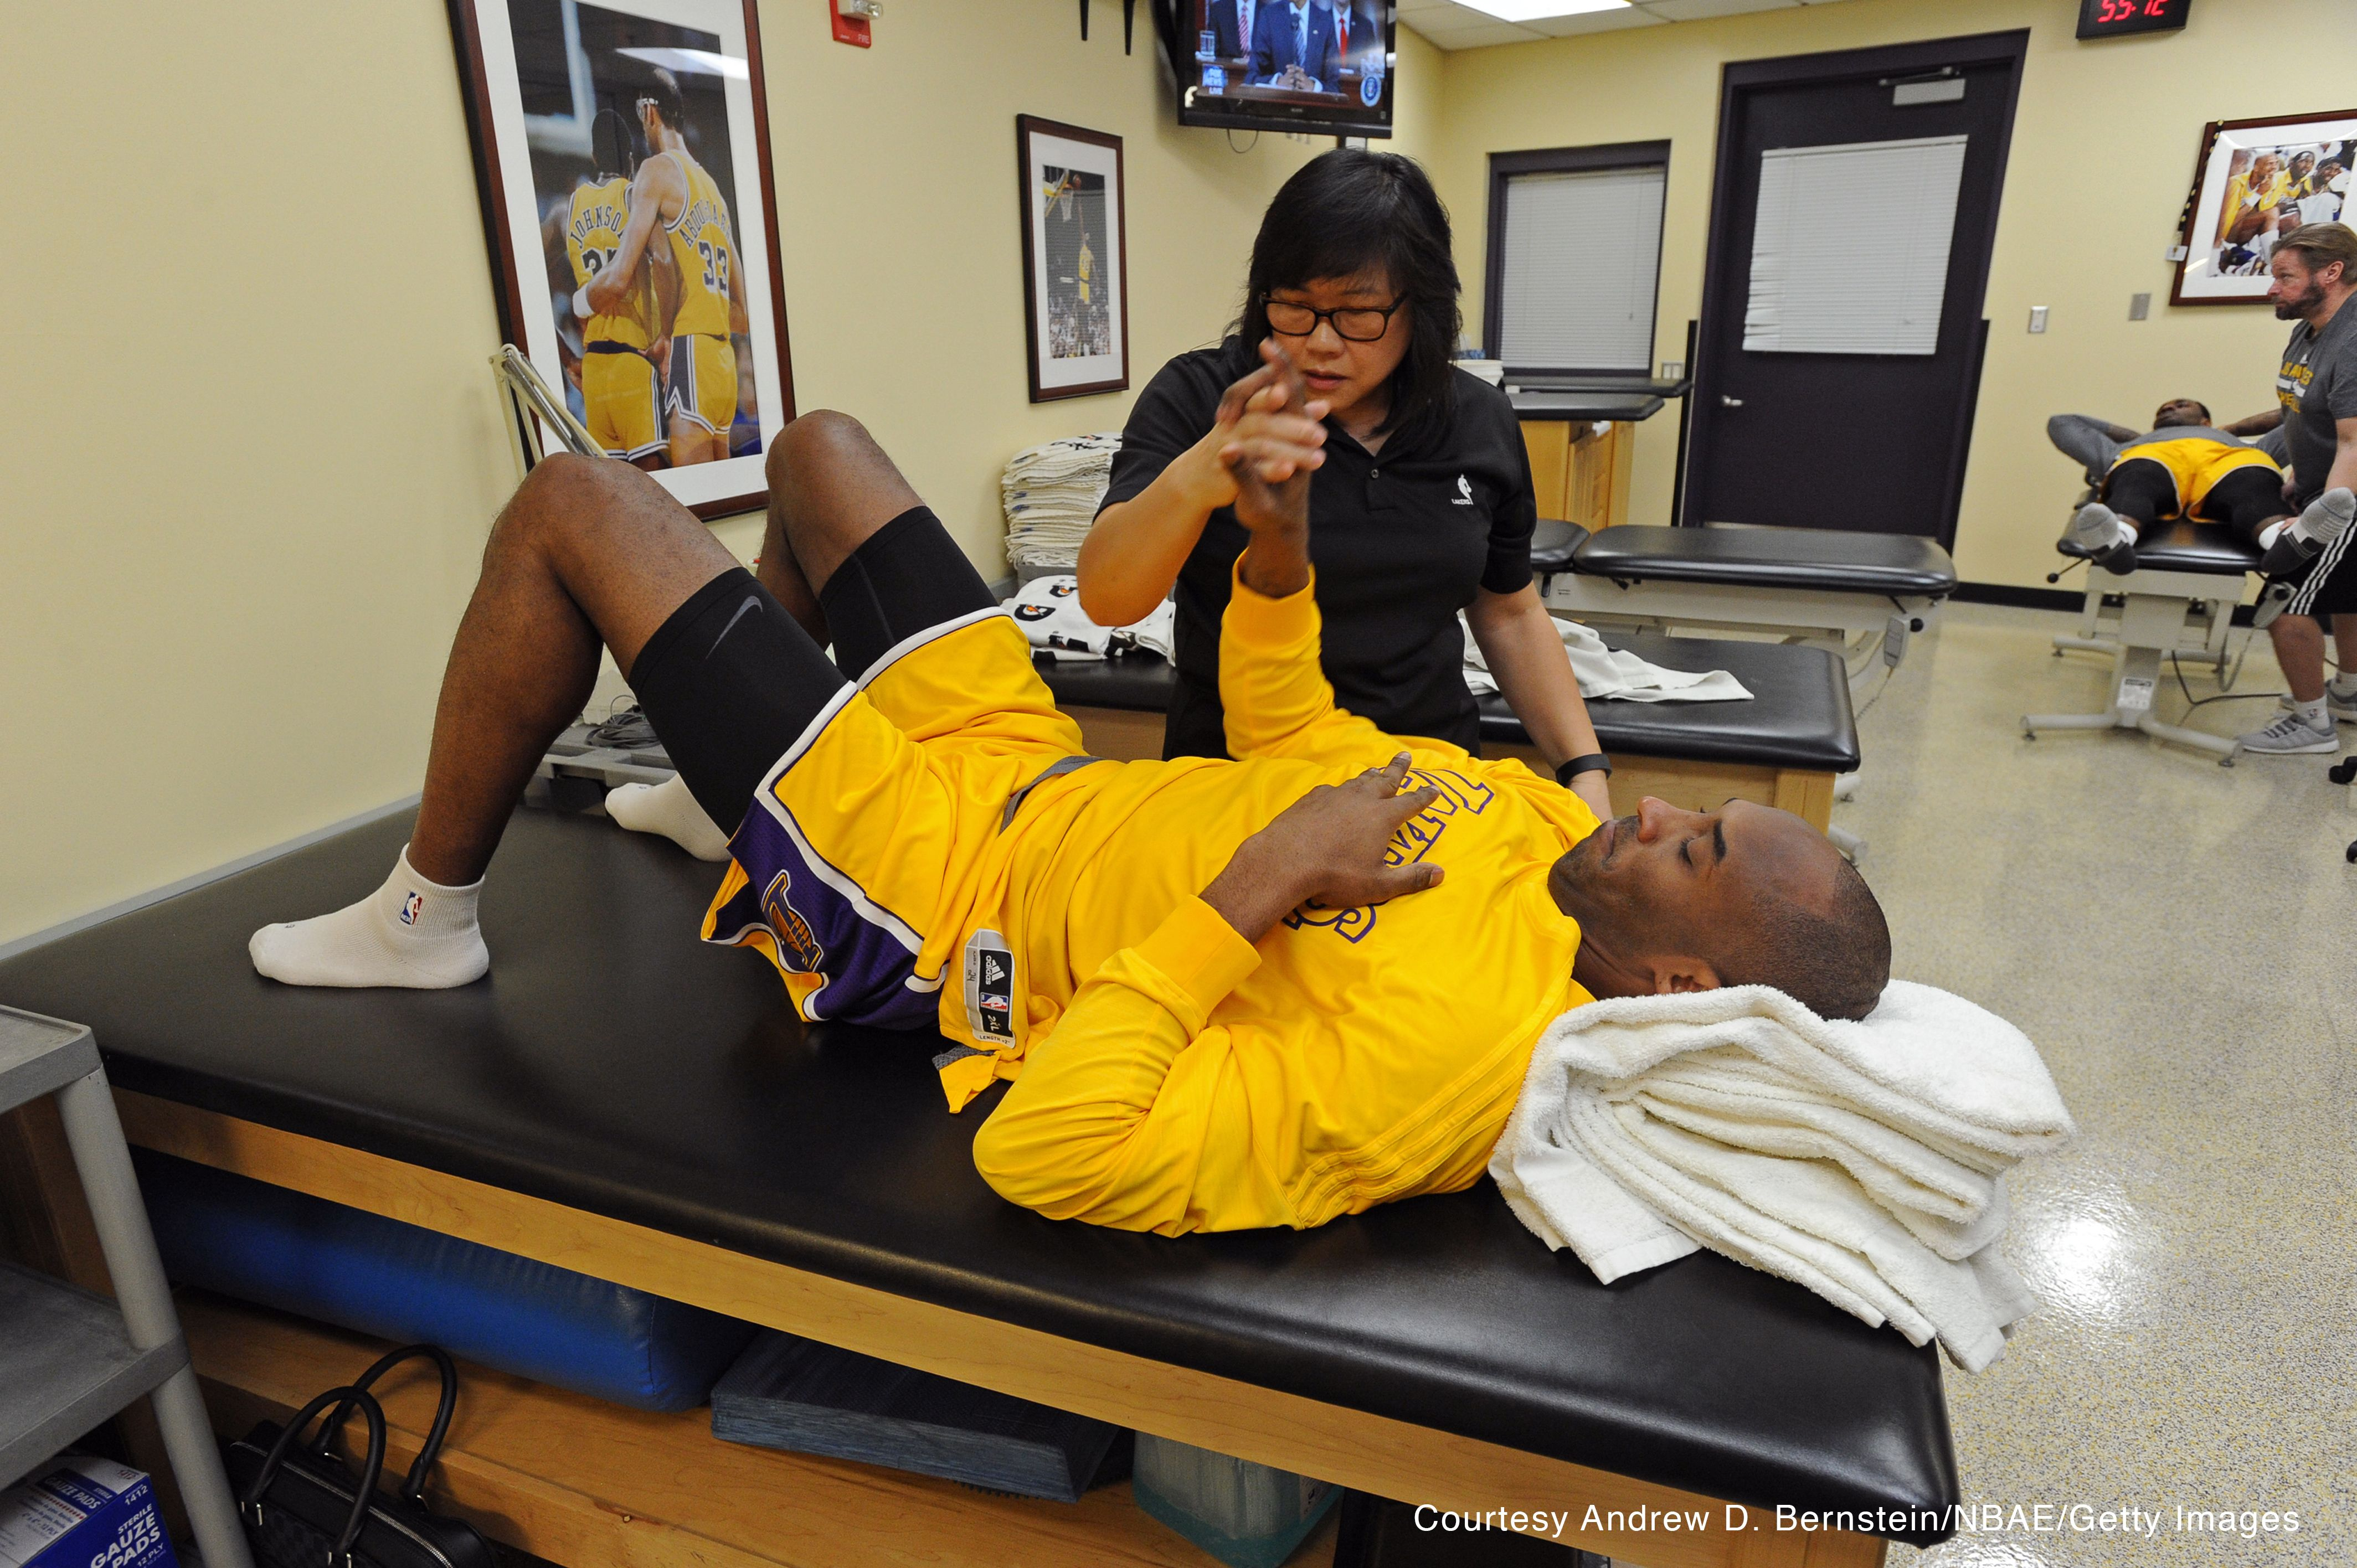 Physical therapy assistantlos angeles - February Kobe Bryant Called Her His Secret Weapon And As Head Physical Therapist Of The Los Angeles Lakers Judy Seto S Responsibilities Include Keep